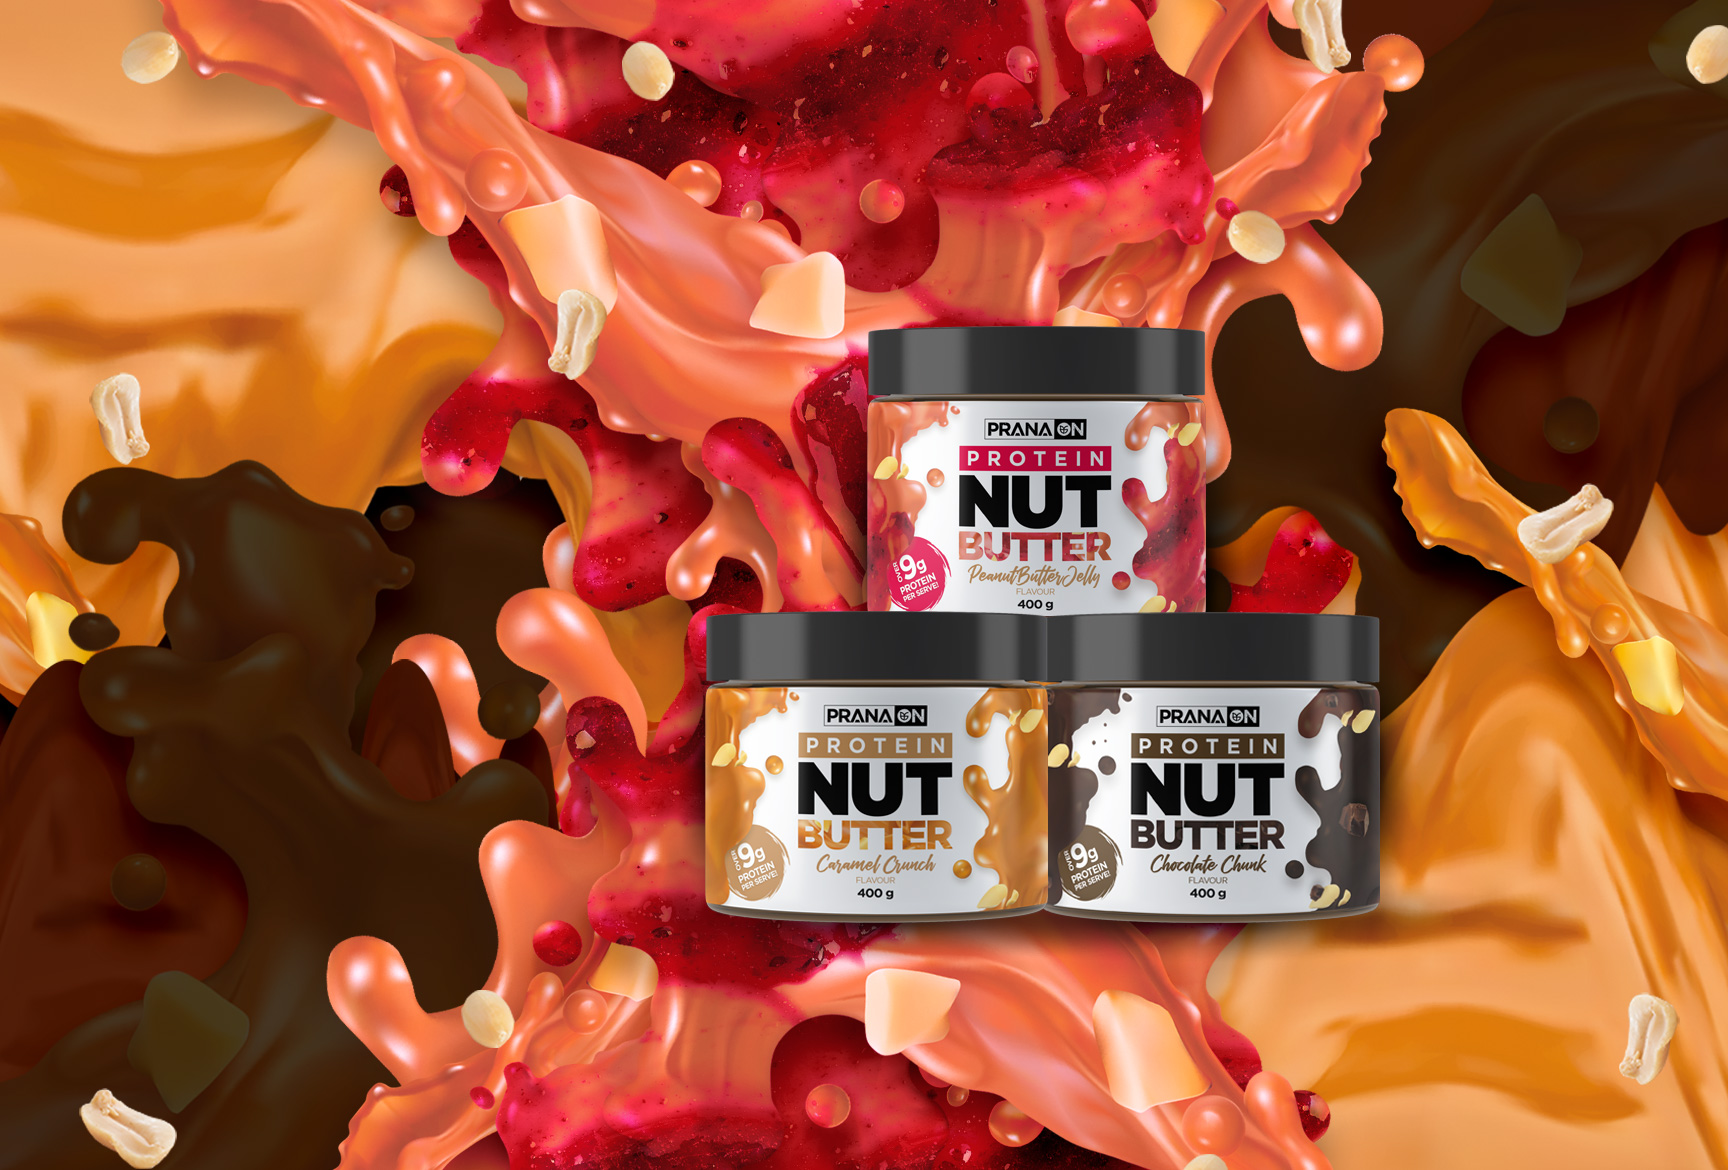 Australia's First High Plant Protein Nut Butter